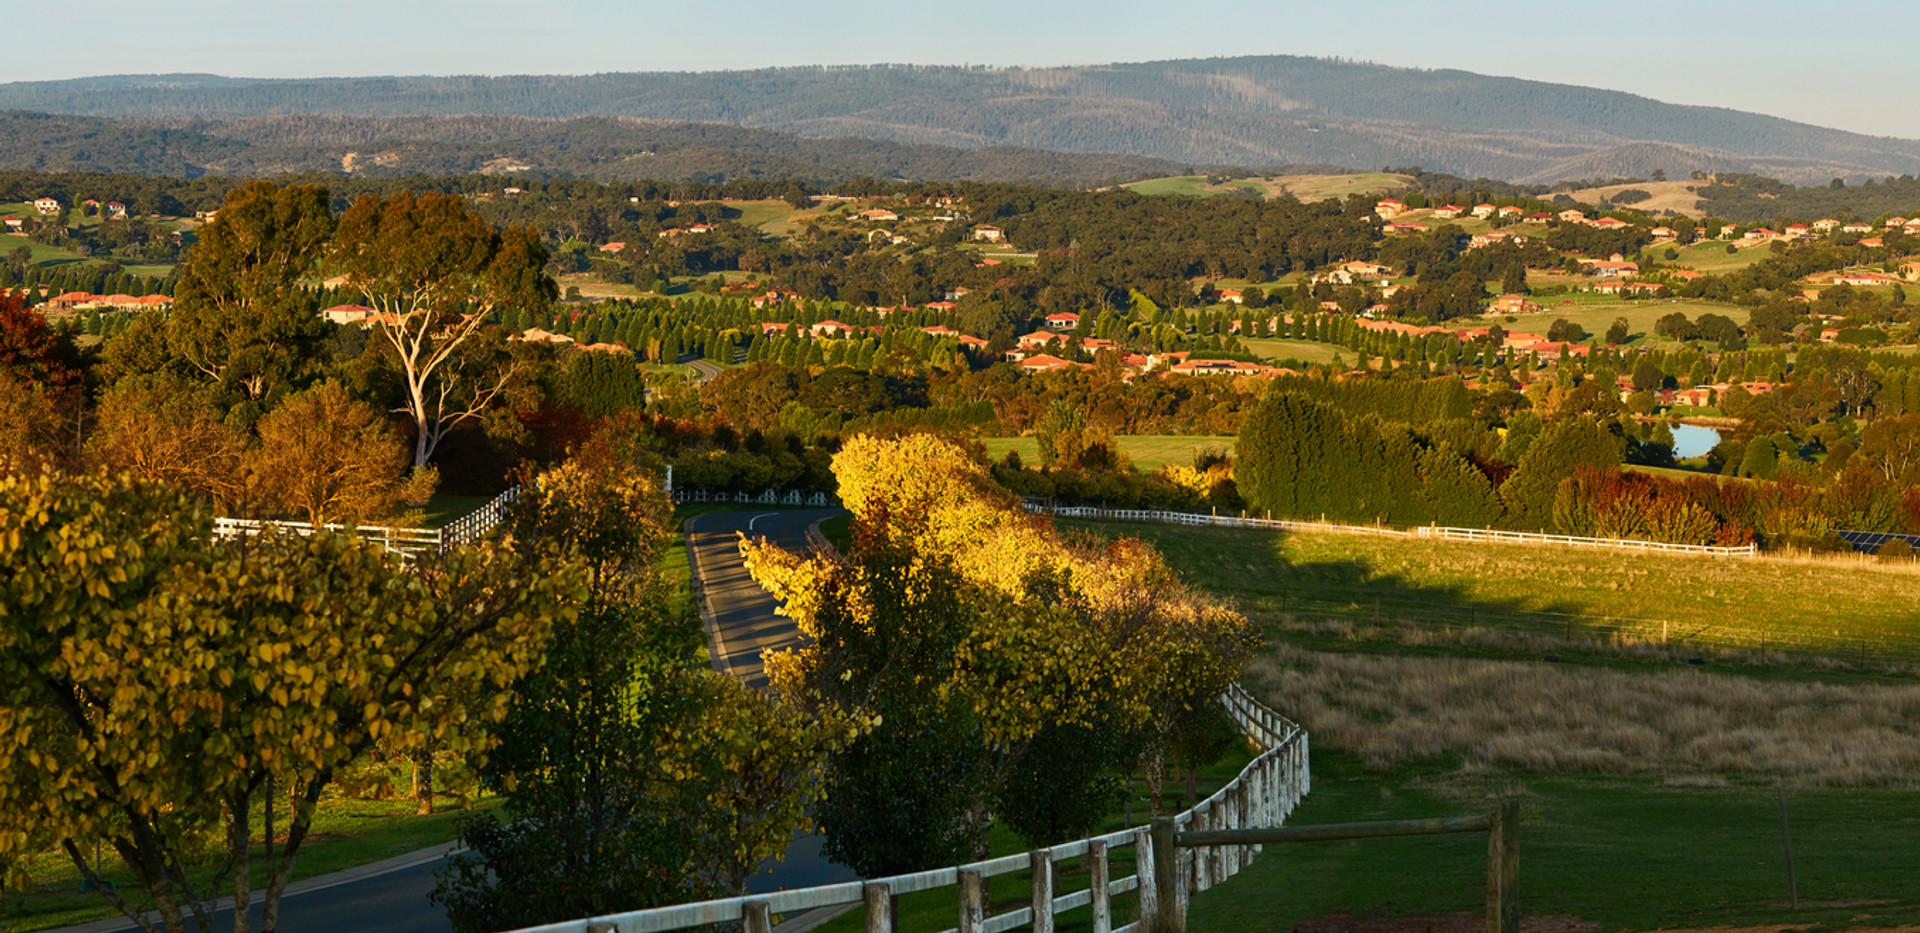 Sunset view over hidden valley and La Dimora Retirement Village 1 hour north of Melbourne